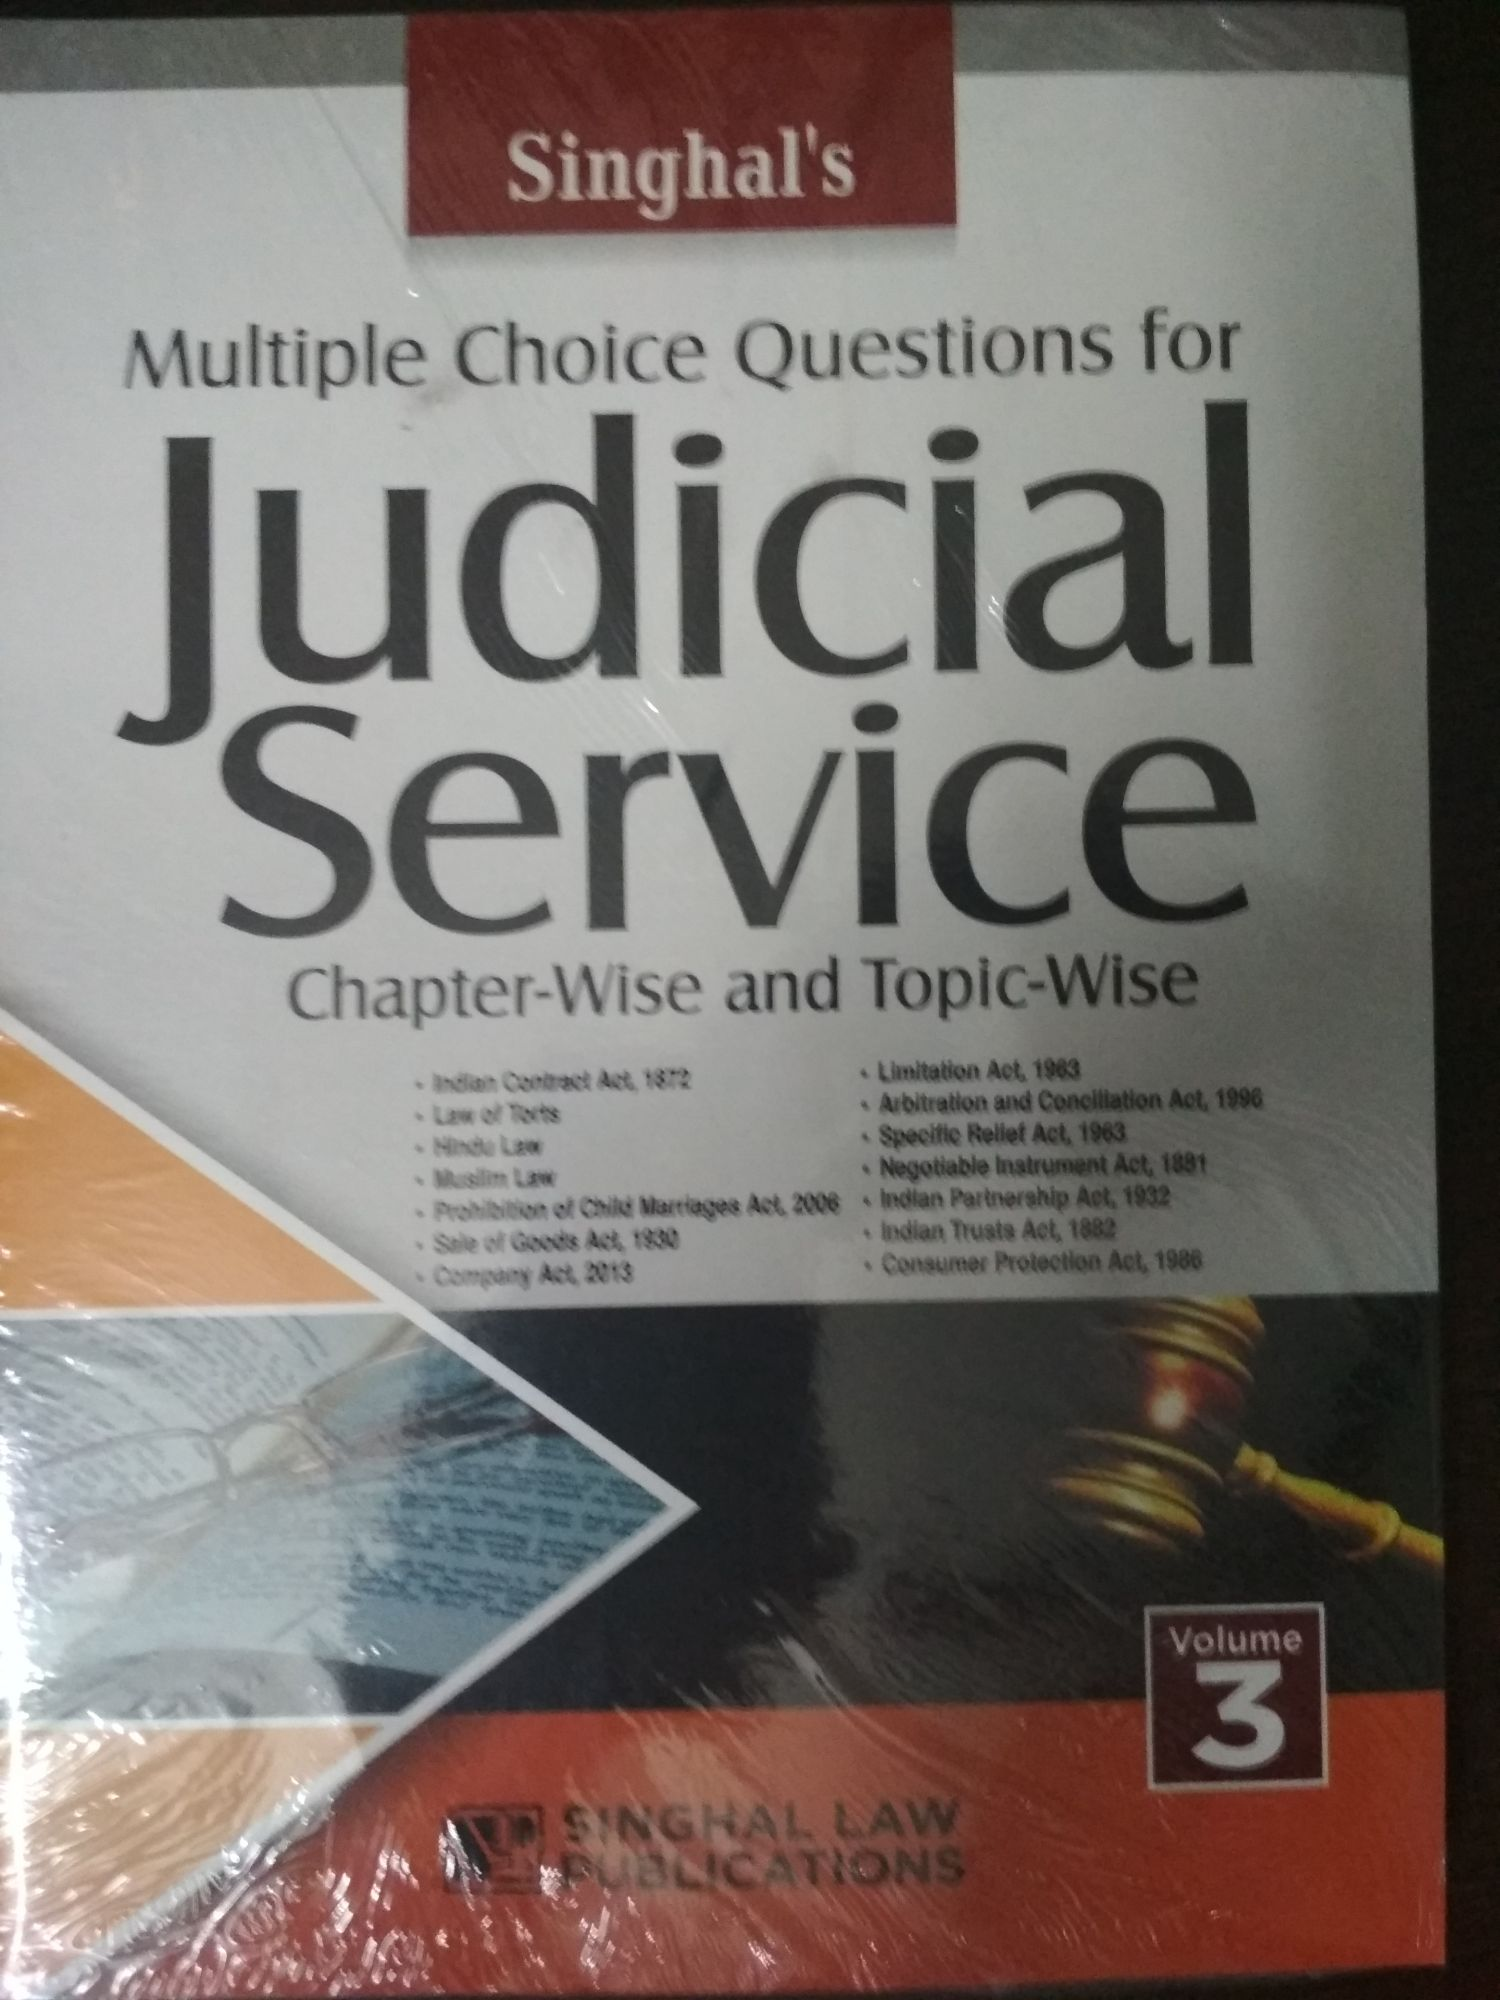 Singhal's Multiple Choice Questions For Judicial Services volume 3